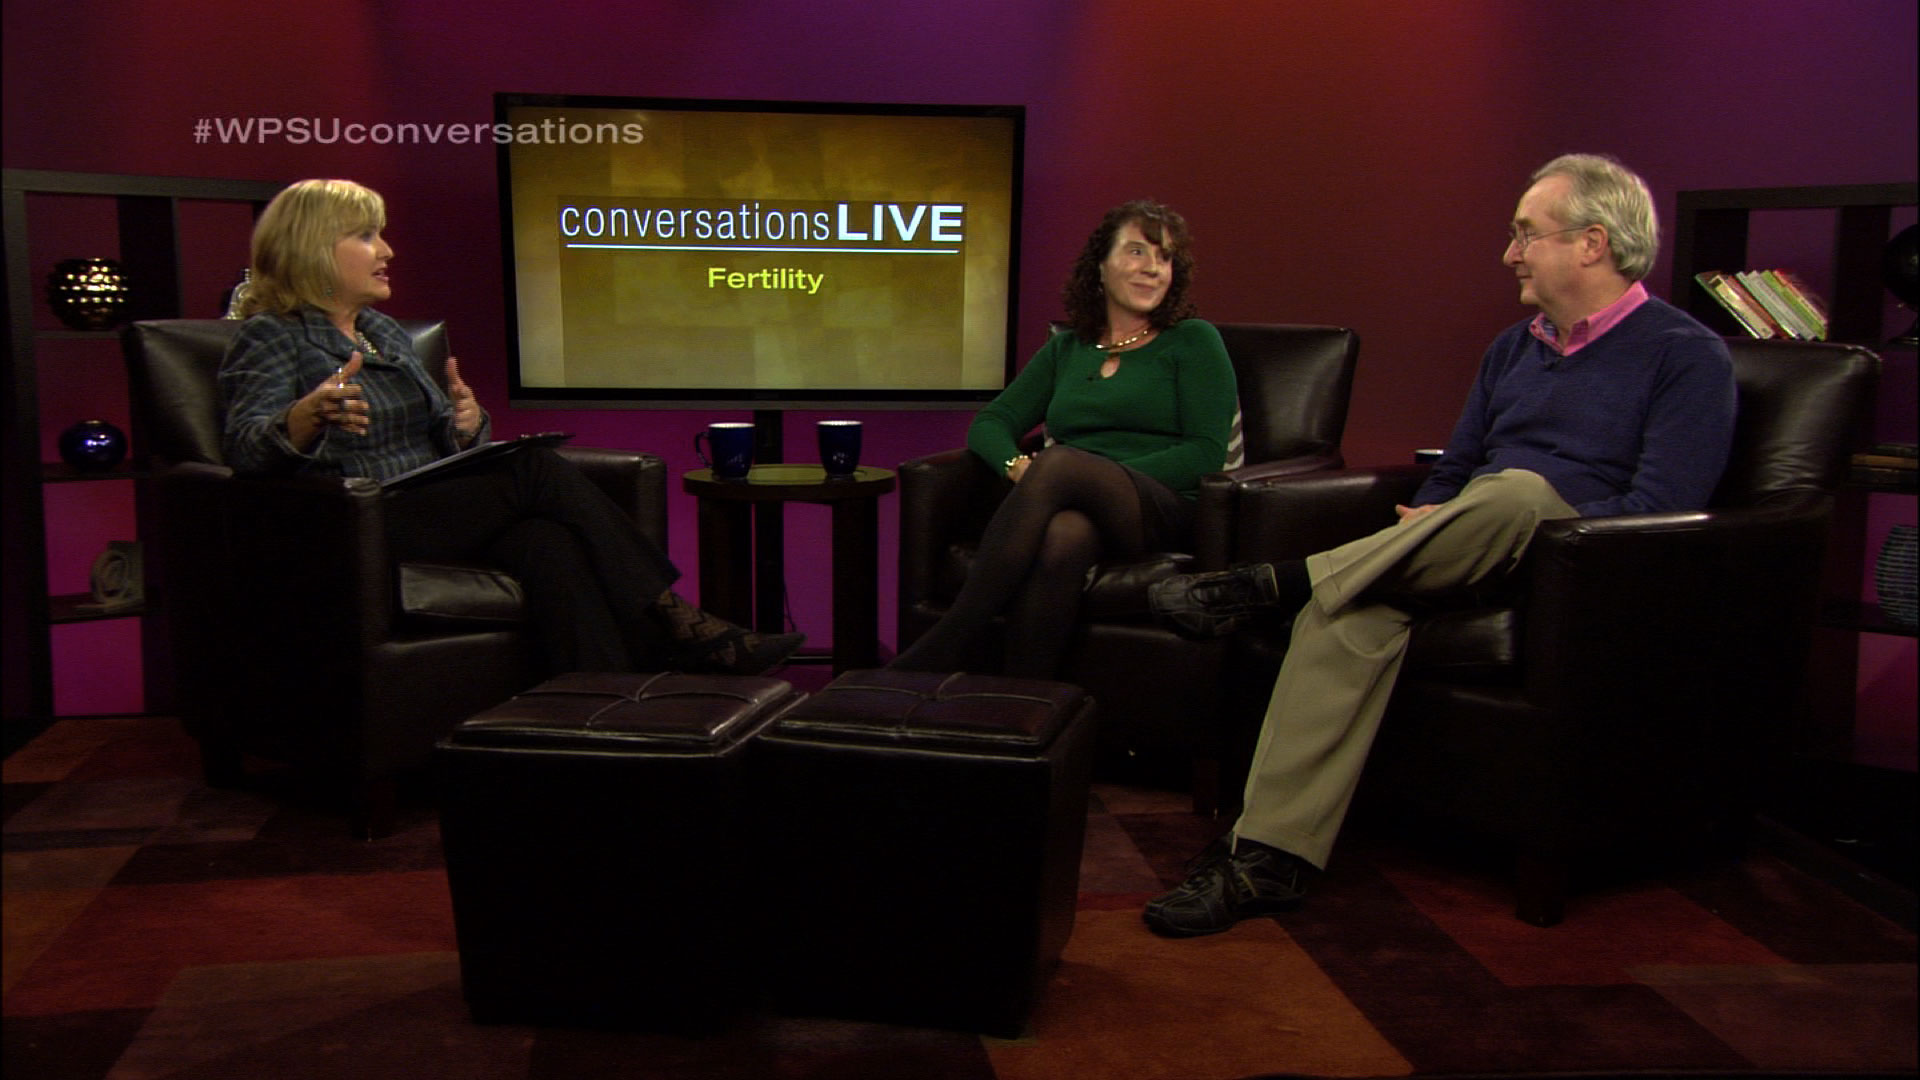 Conversations Live: Fertility